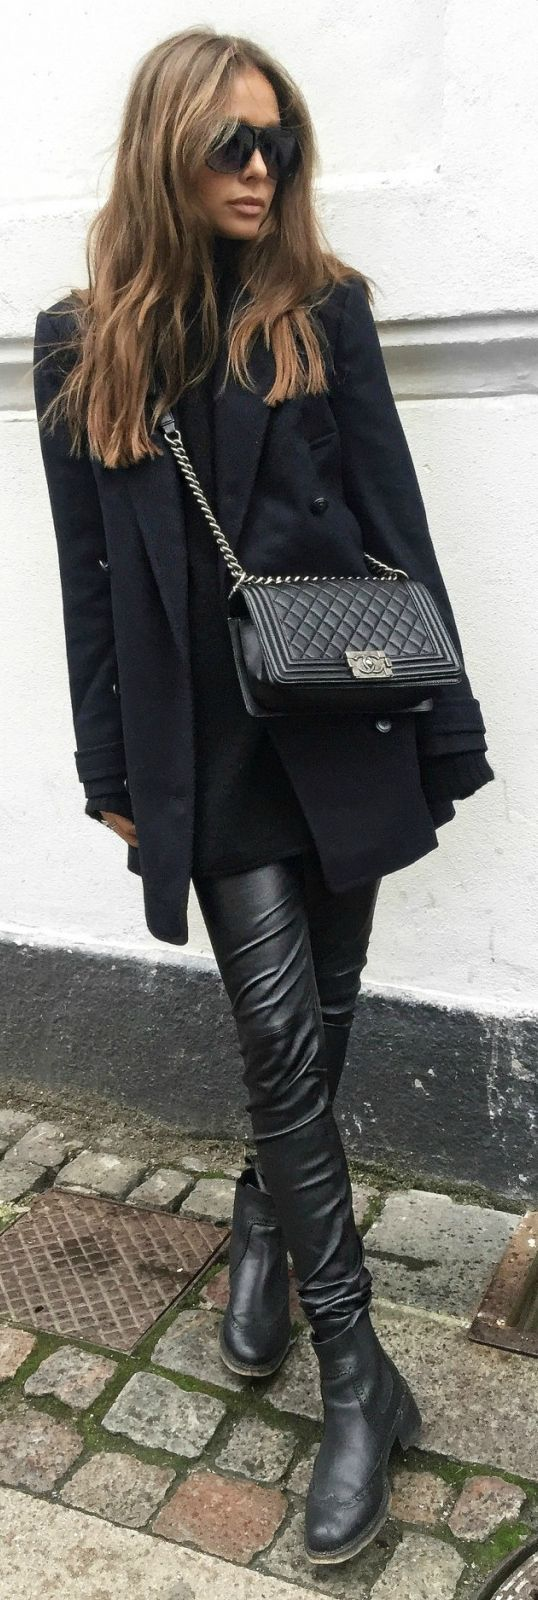 Leather leggings are the perfect choice for an all black look. Maria Kragmann wears a pair with gorgeous Chelsea boots and an oversized blazer from Pepe Jeans.   Coat: Pepe Jeans, Trousers: Asos, Boots: Kurt Geiger, Bag: Chanel.... | Style Inspiration